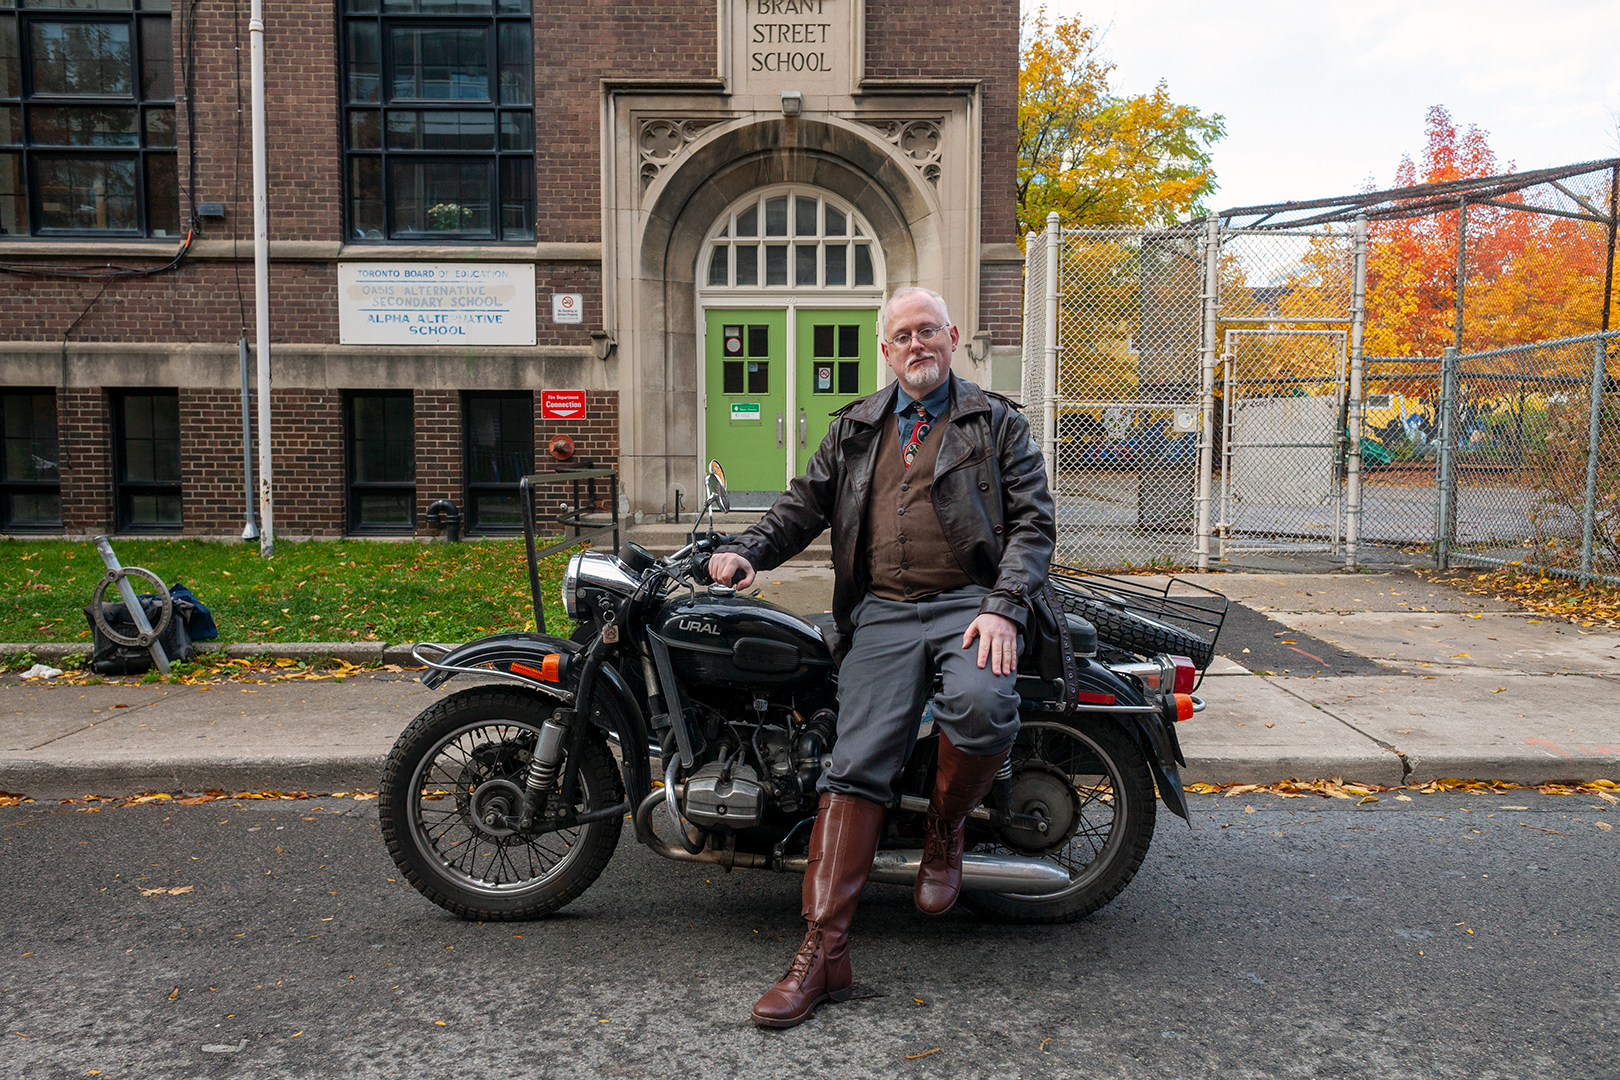 Jamie Leonard sits on a Ural motorcycle in front of Alpha Alternative School